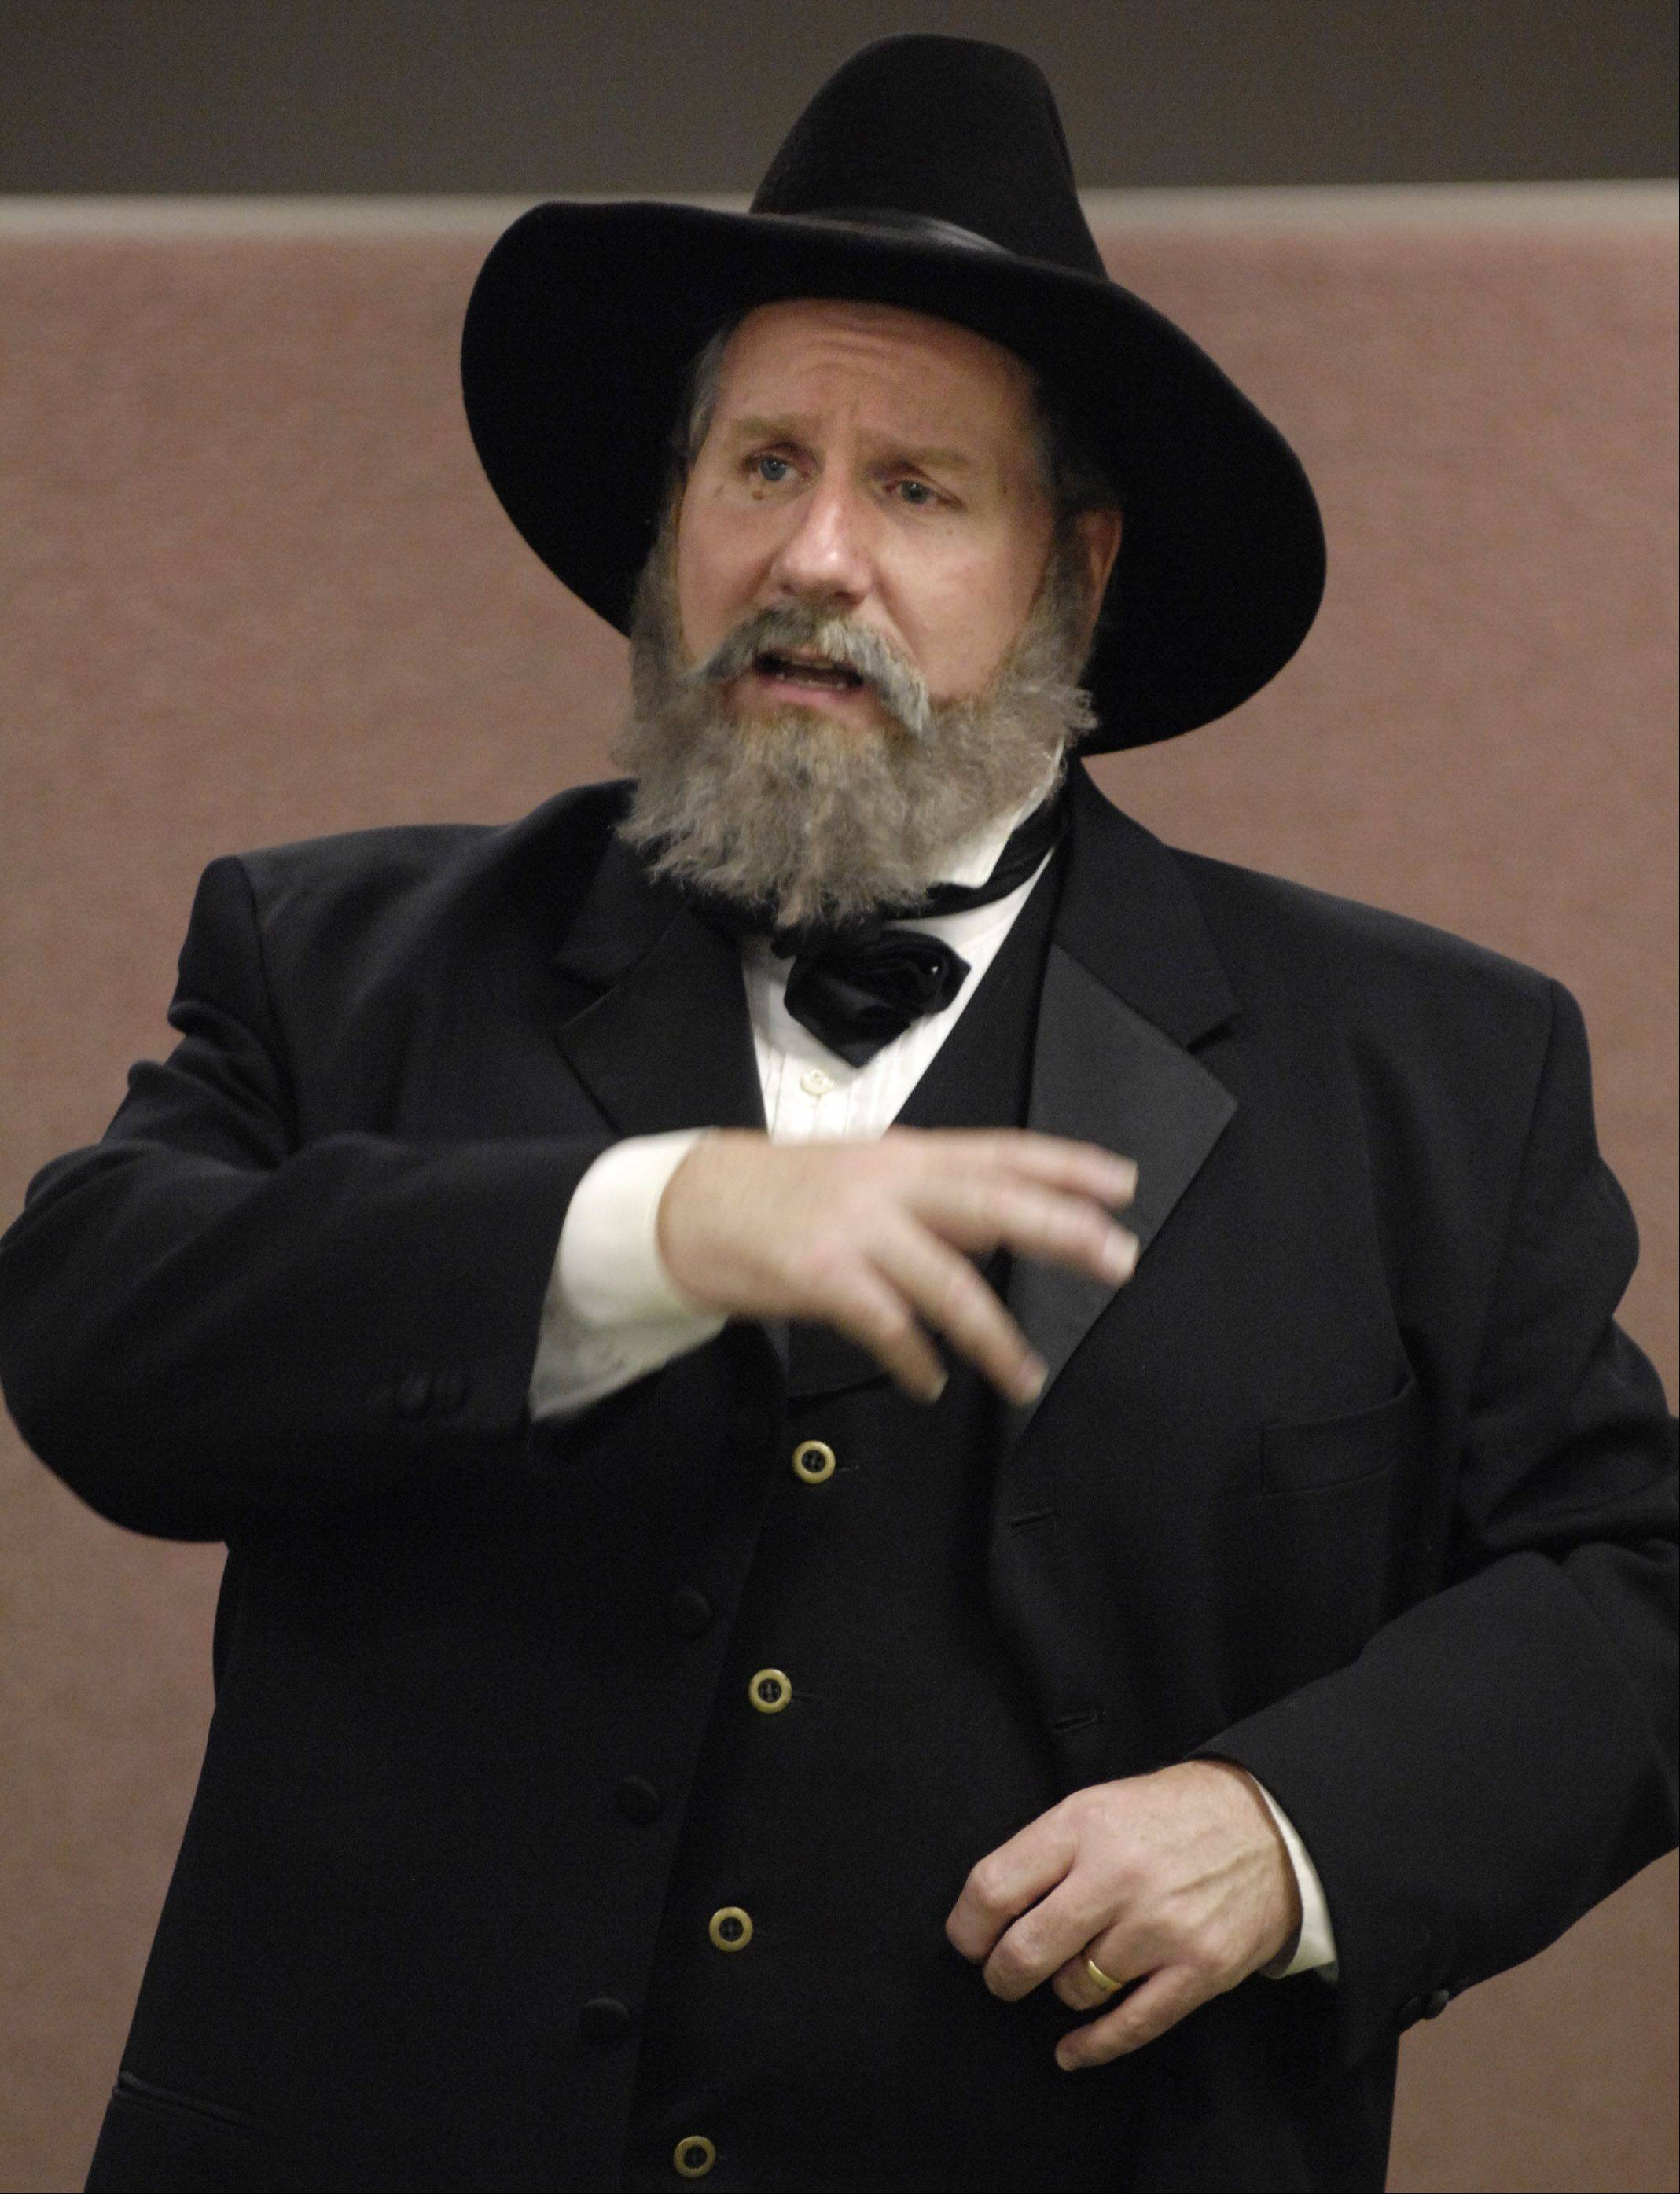 Civil War re-enactor Terry Lynch portrays Gen. Ulysses S. Grant as part of Naper Settlement History Speaks lecture Sunday.